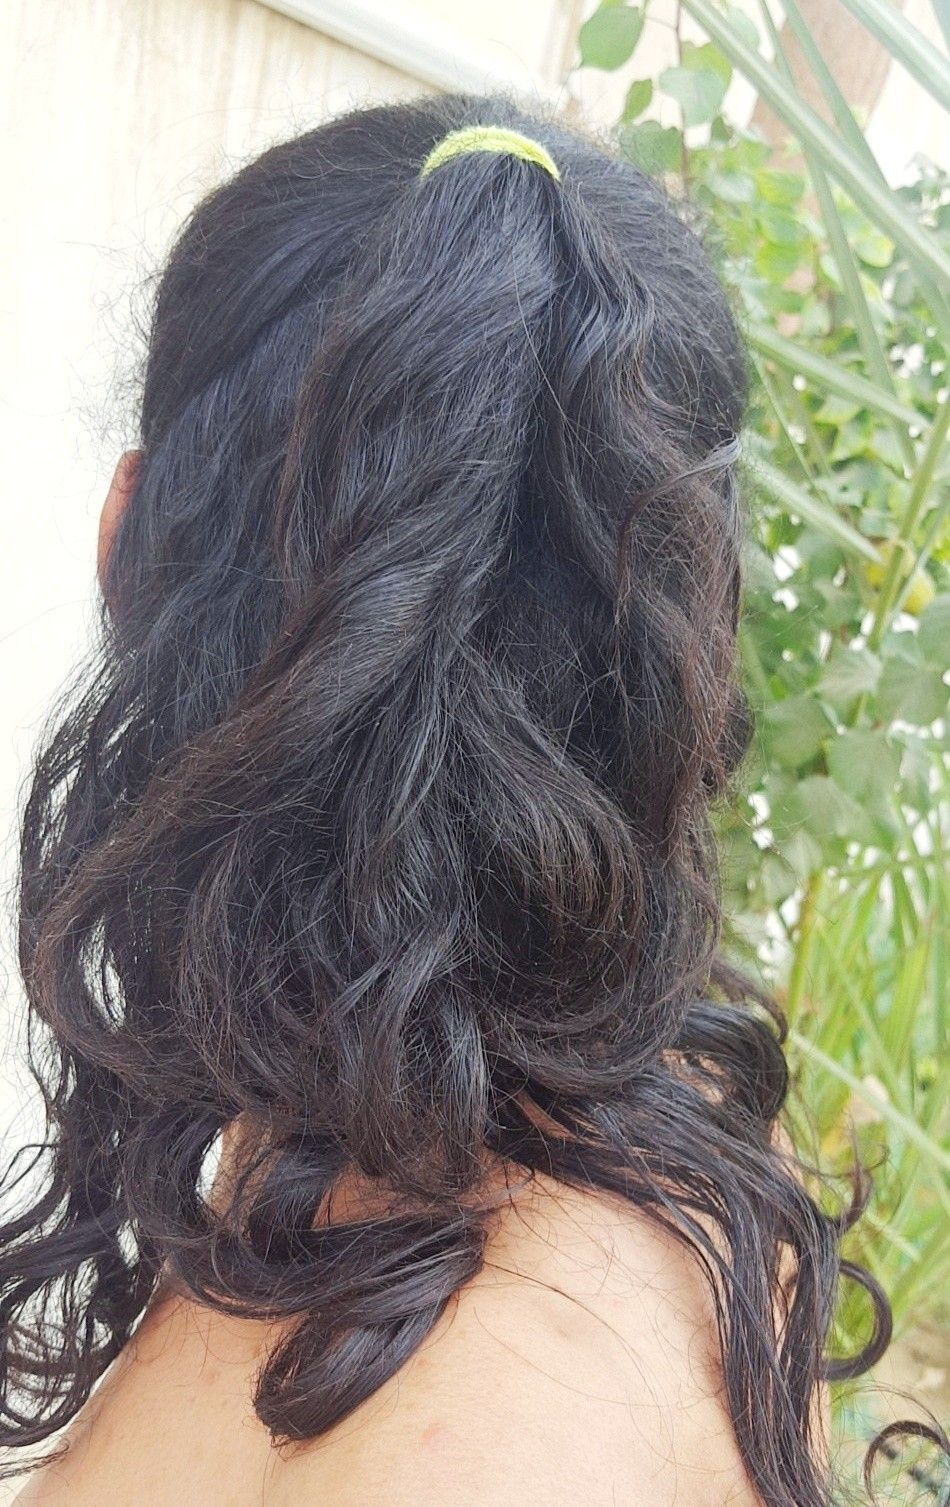 Half Ponytail Hairstyle Hair Hairstyle Ponytail Tie Tied Style Long Half تسريحة شعر ذيل الحصان النصفية تسريحة شعر ربط الشعر Tied Hair Long Hair